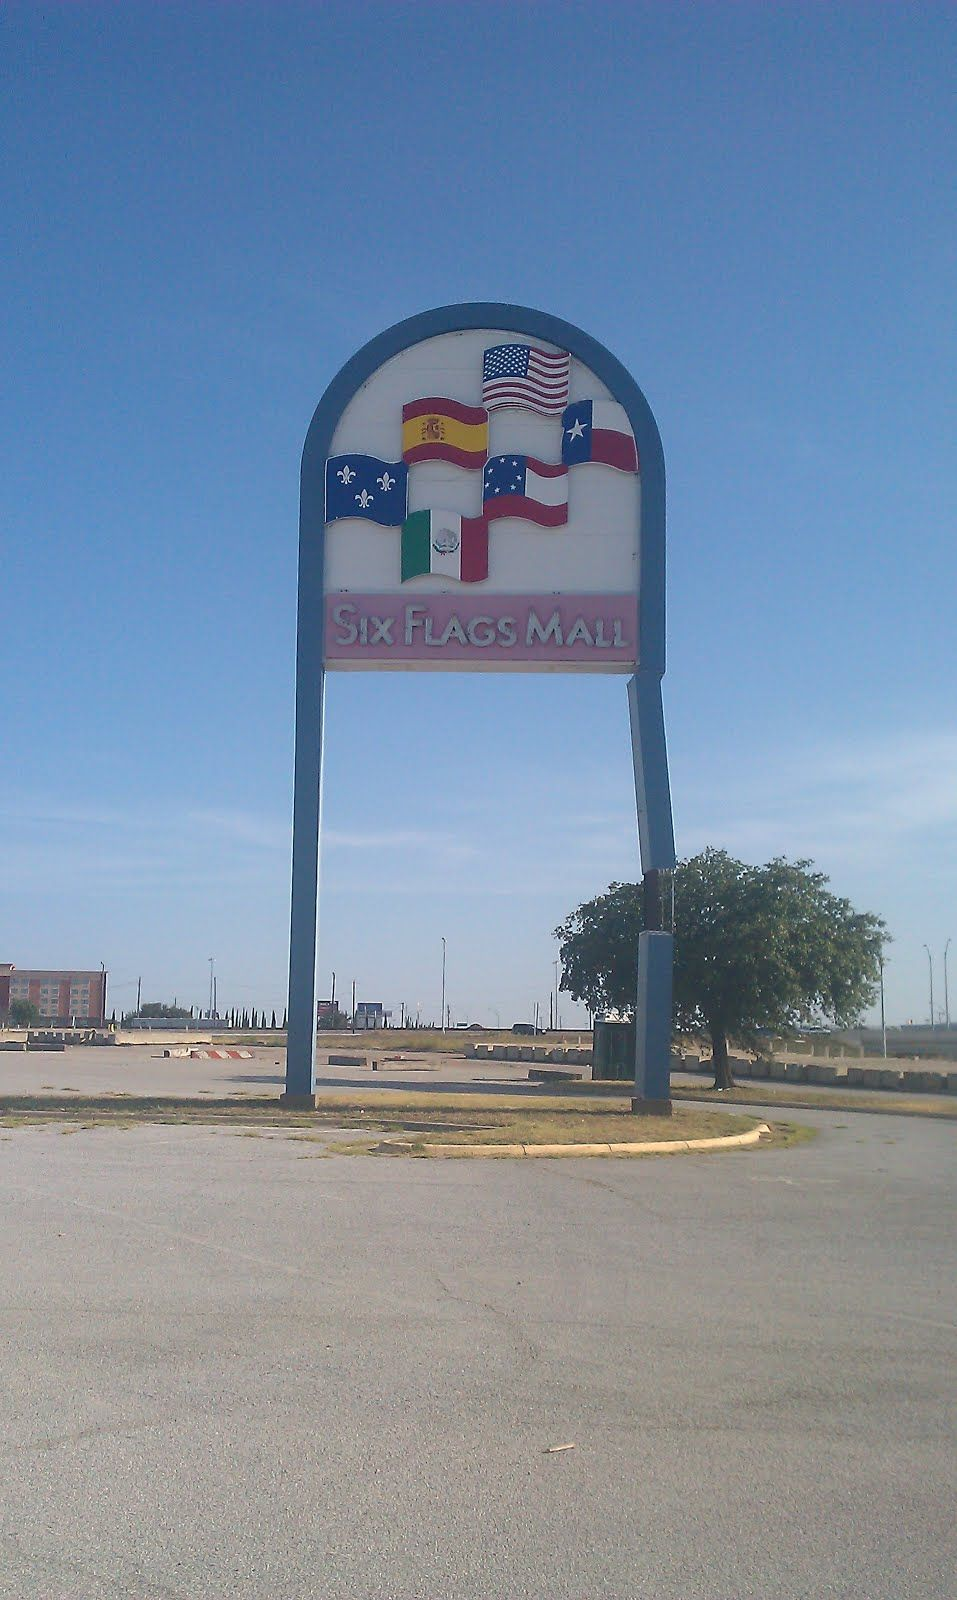 Here Is The Six Flags Mall In Arlington Texas Which Closed Sometime Earlier This Year Possibly June Before I Had A C Arlington Texas Arlington Texas Places